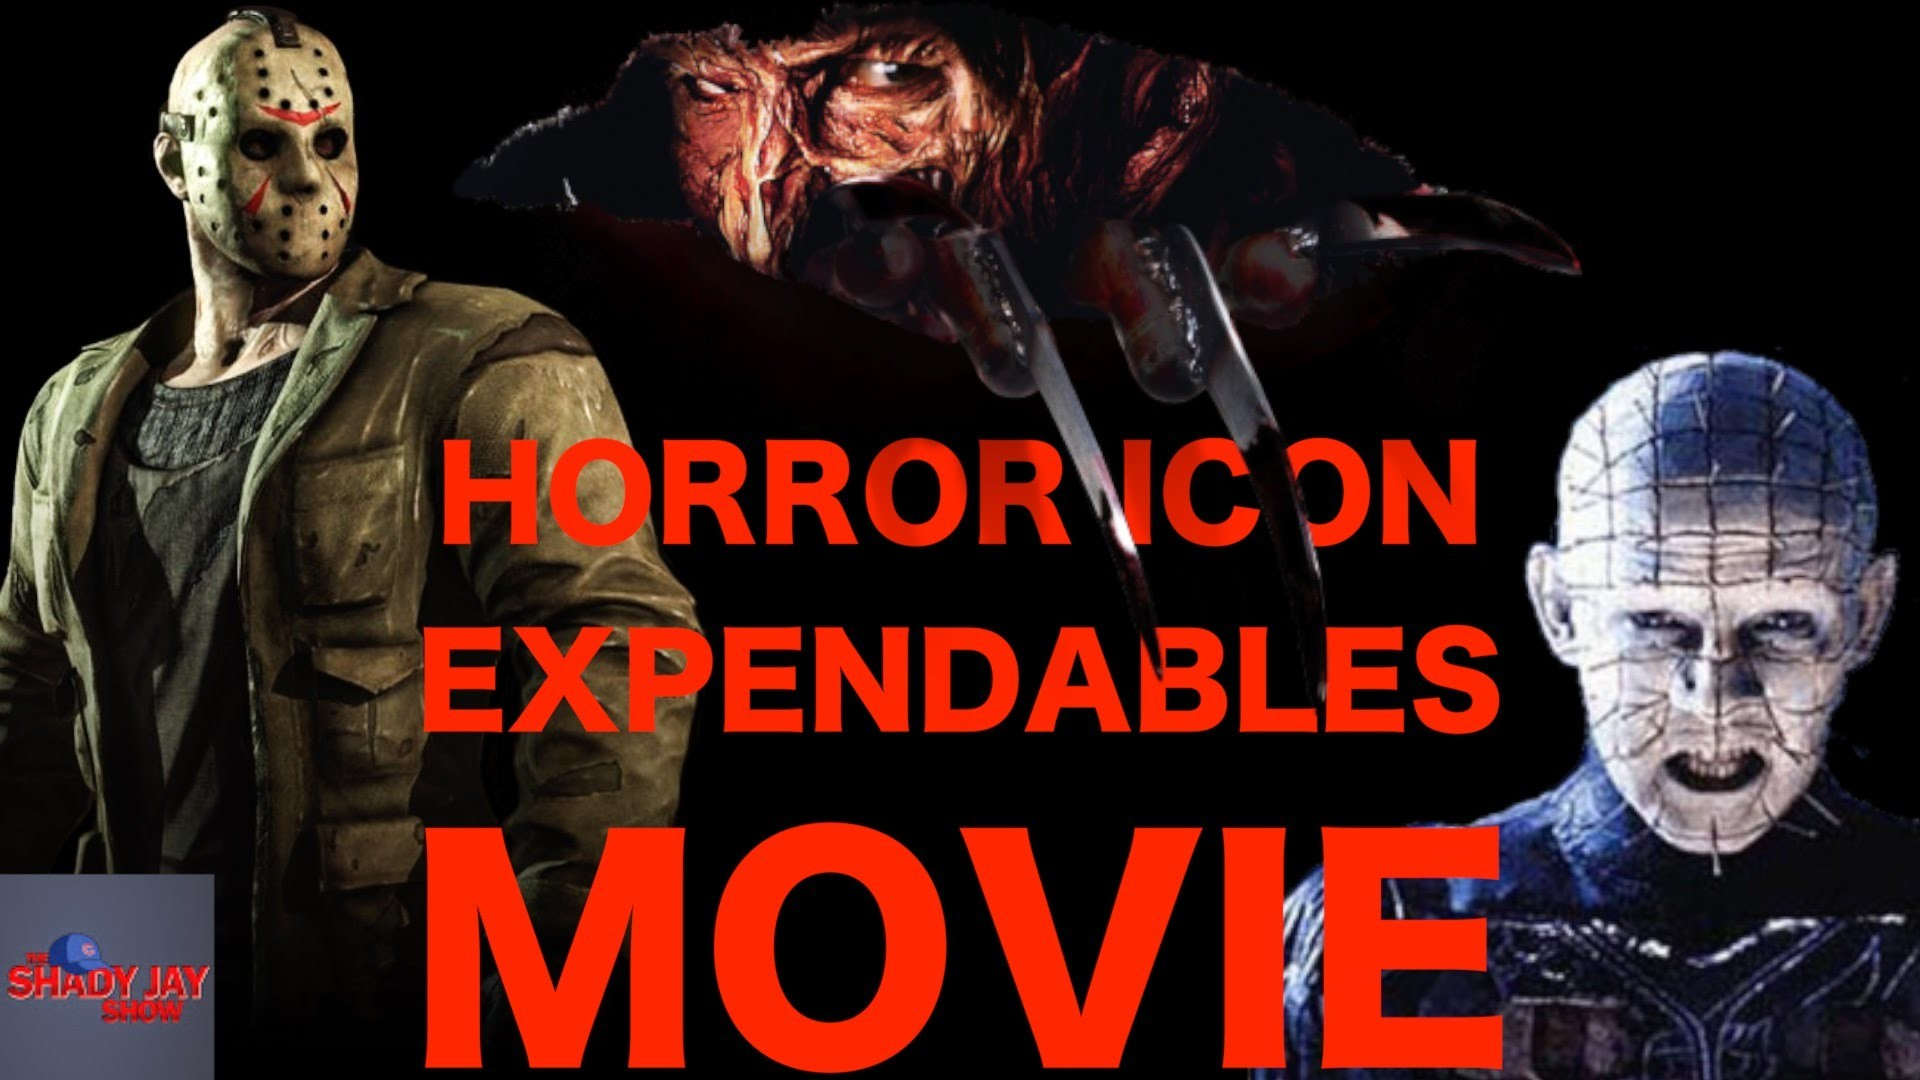 1920x1080 HORROR ICON EXPENDABLES MOVIE?!